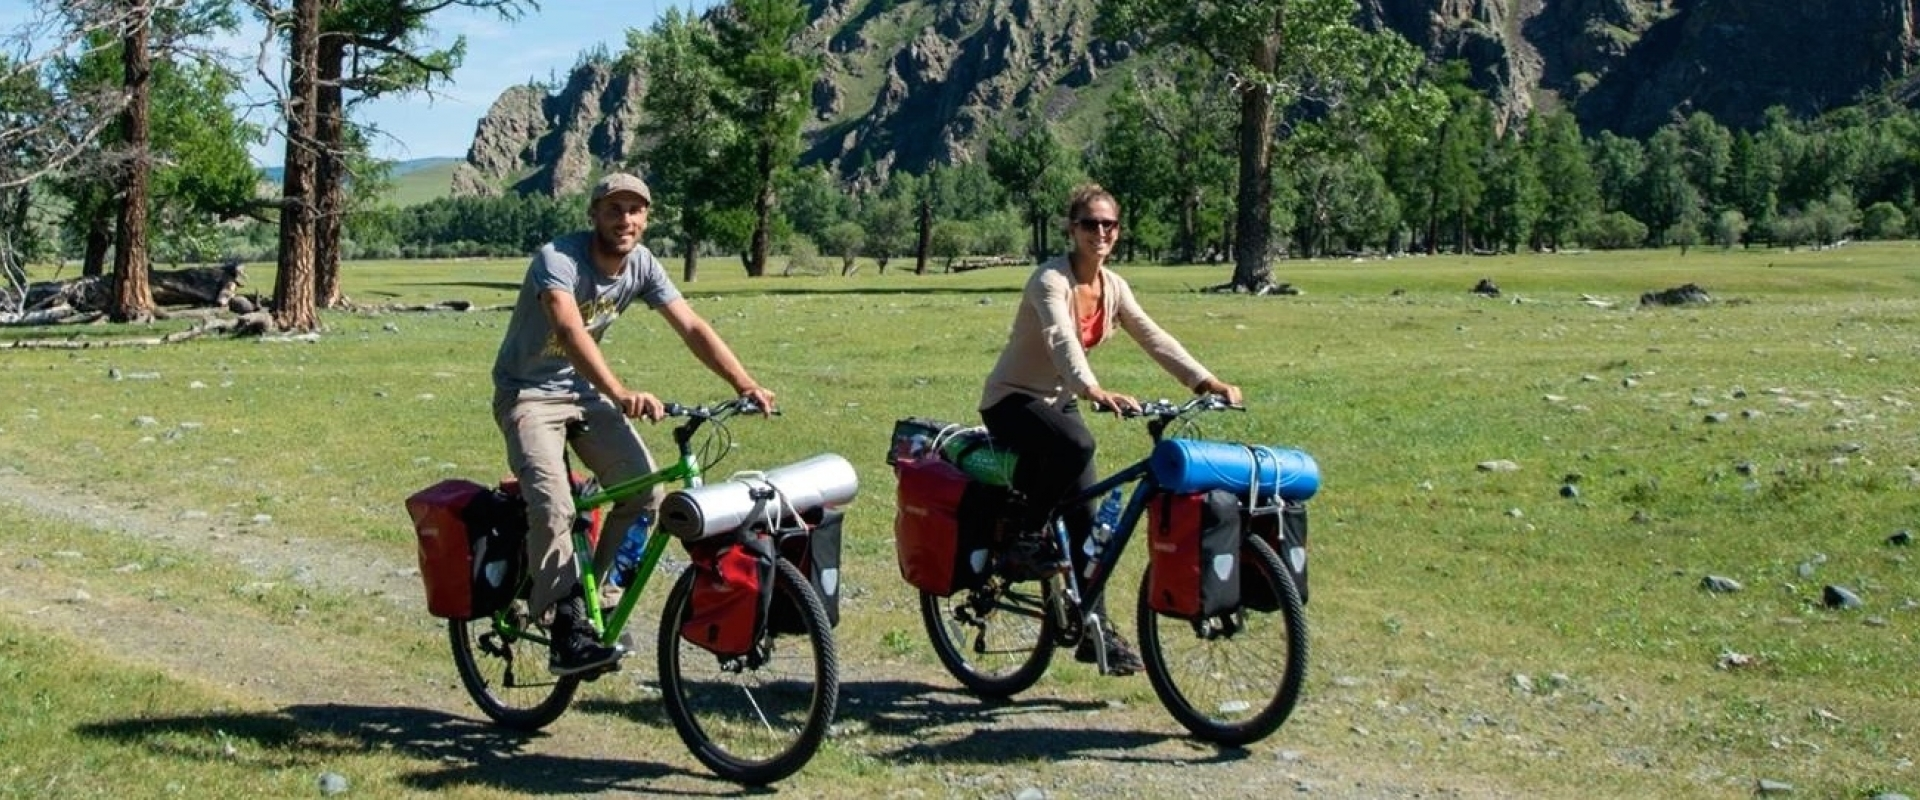 Explore Mongolia with fully equipped touring bikes